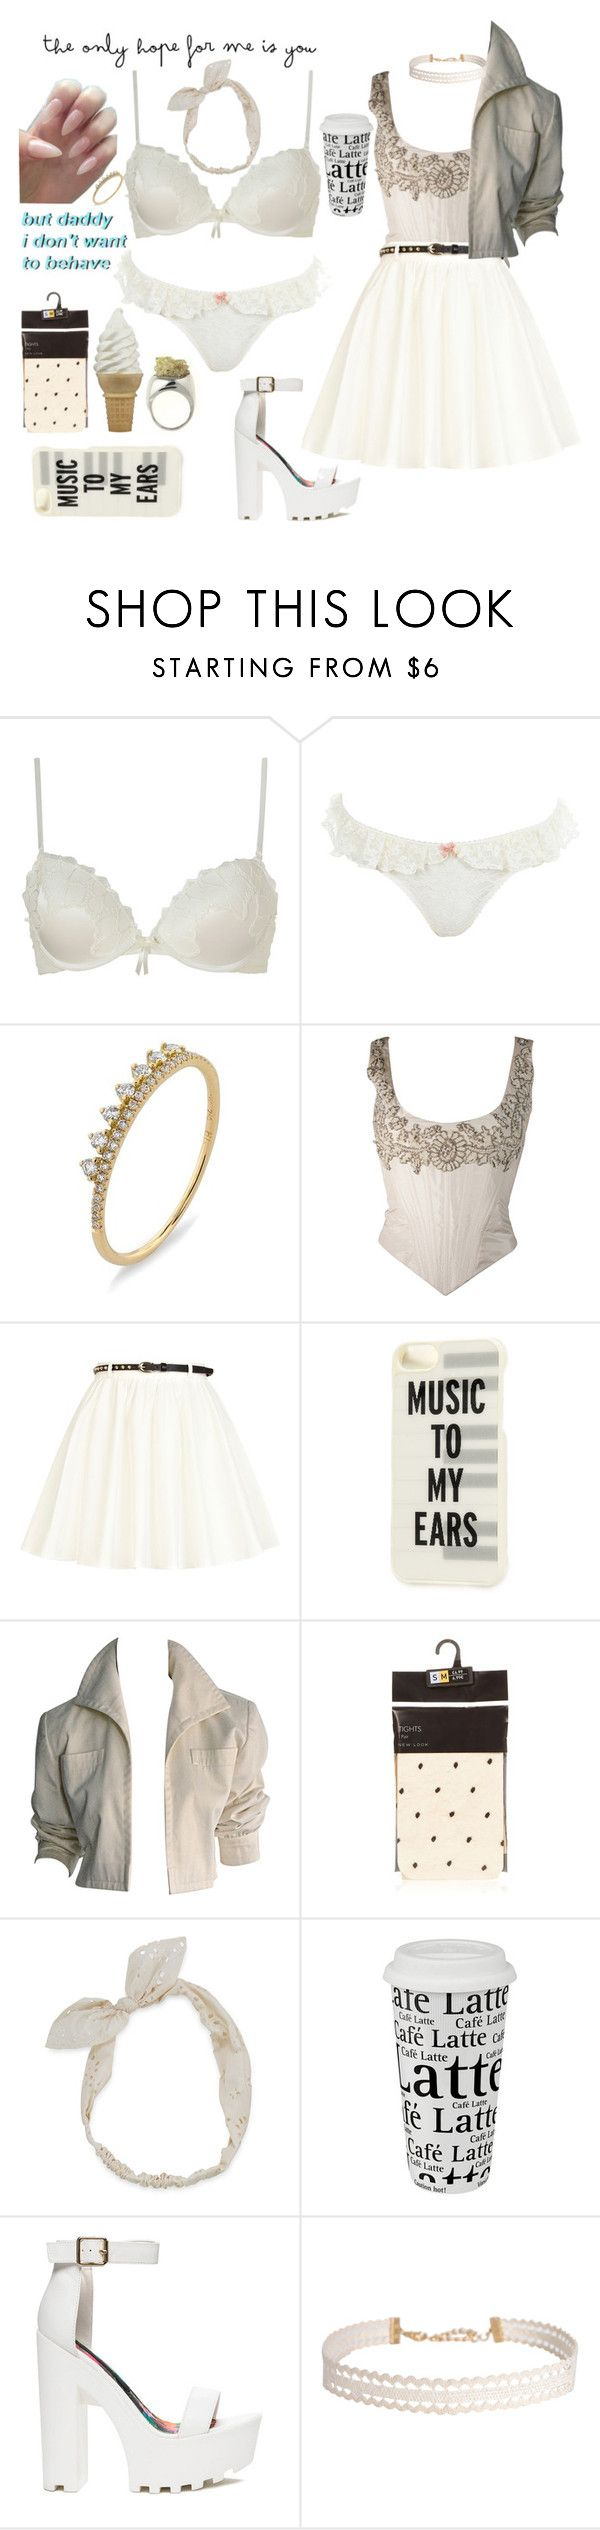 """""""daddy J's"""" by xkitten-pokerx ❤ liked on Polyvore featuring Elle Macpherson Intimates, Miss Selfridge, Bony Levy, River Island, Kate Spade, YSL RIVE GAUCHE, Carole, Könitz and Humble Chic"""